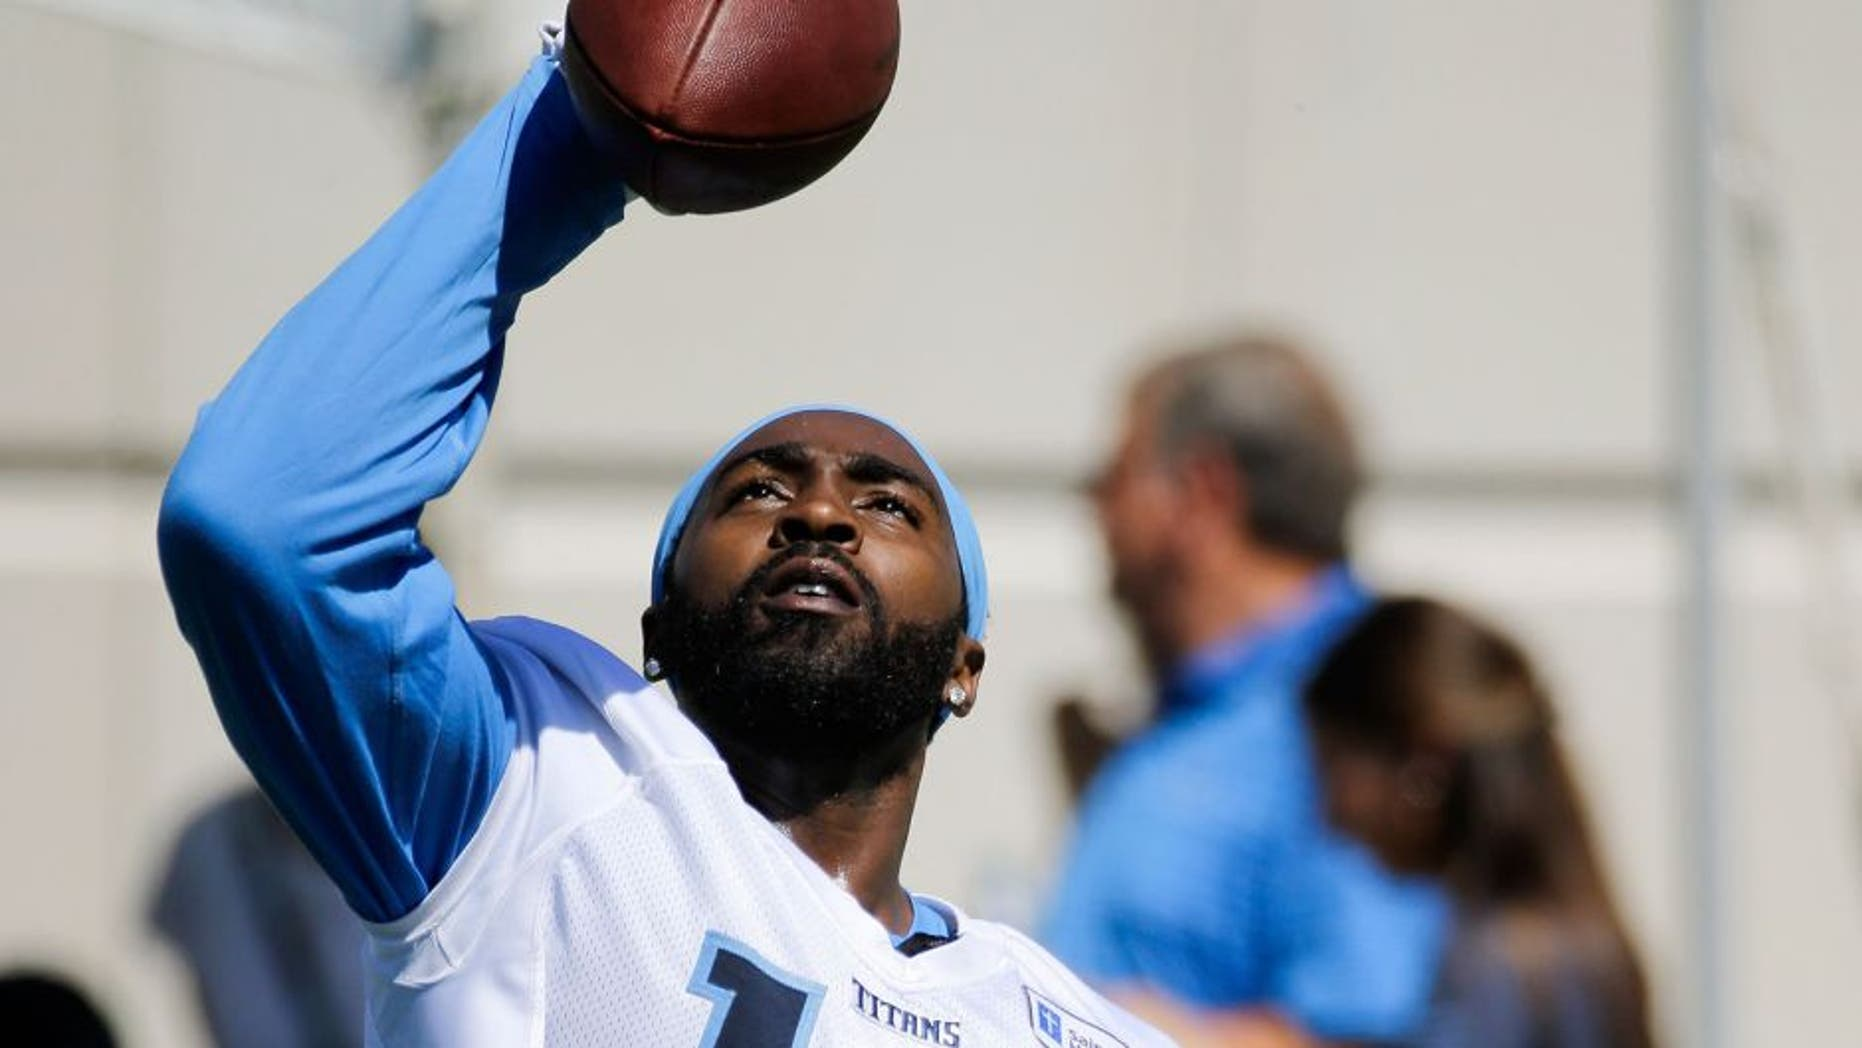 Tennessee Titans wide receiver Hakeem Nicks makes a one-handed catch during NFL football training camp Friday, July 31, 2015, in Nashville, Tenn. (AP Photo/Mark Humphrey)